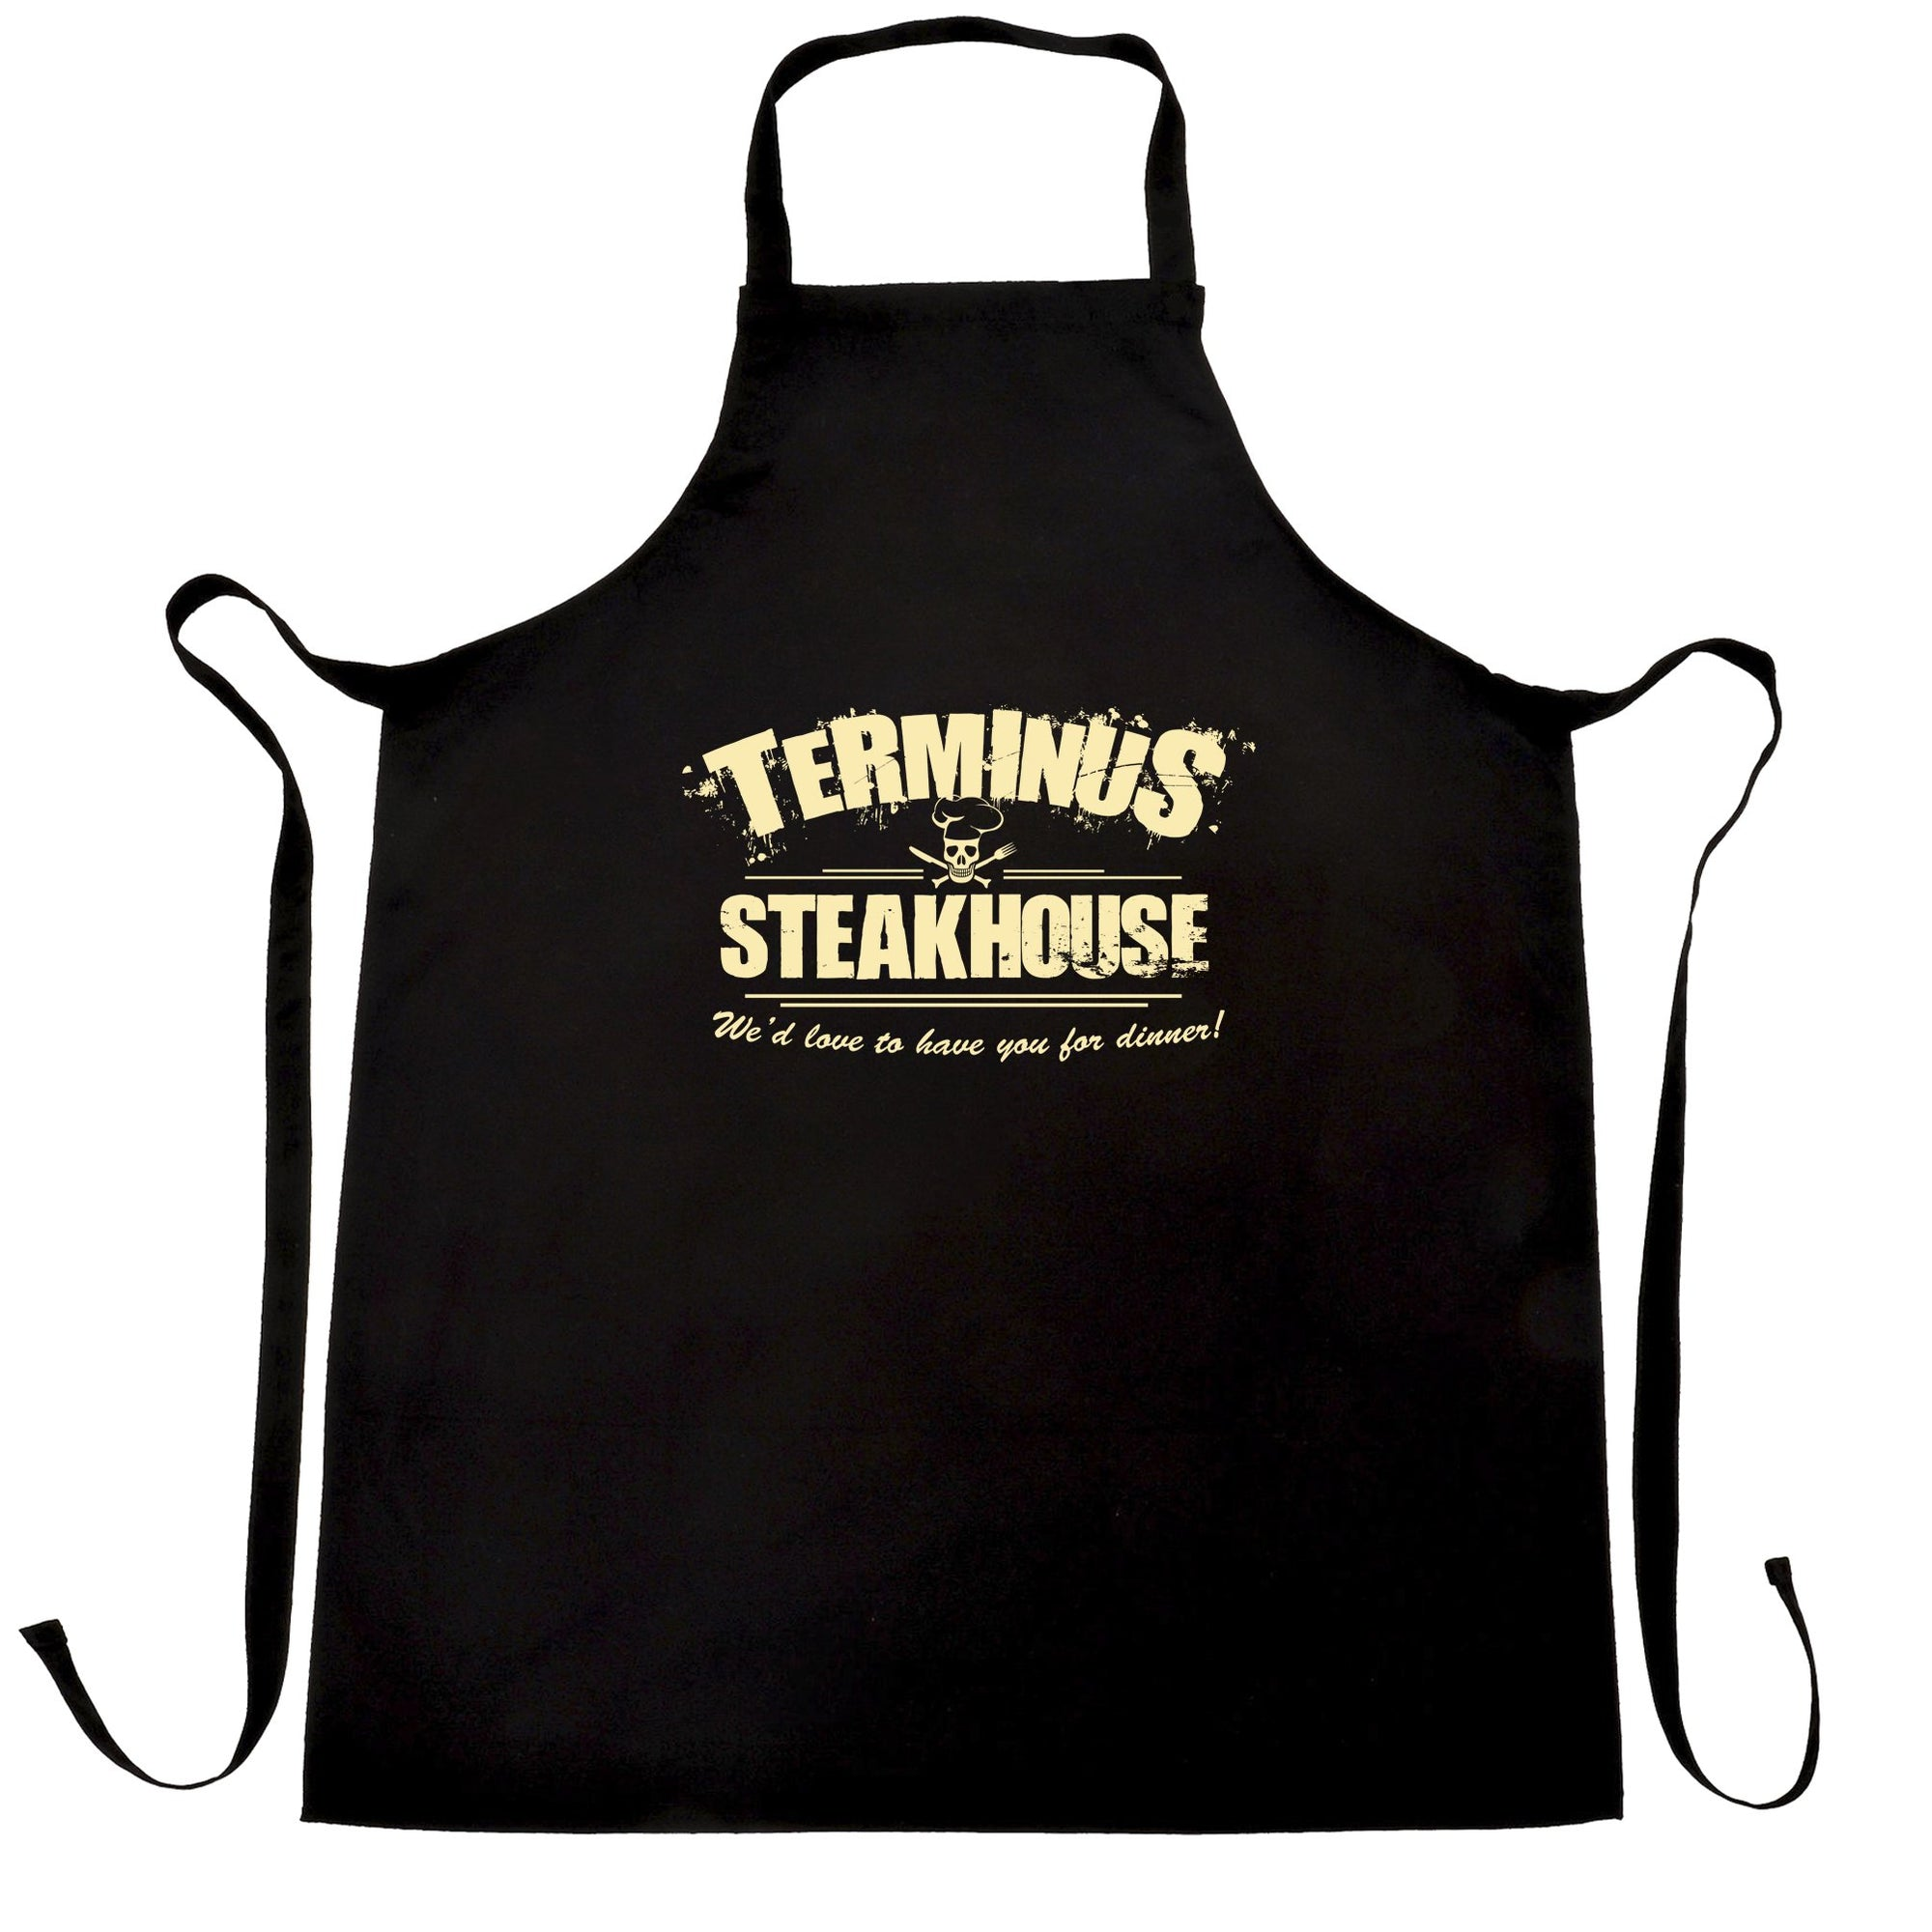 Terminus Steakhouse Apron Inspired by the walking dead